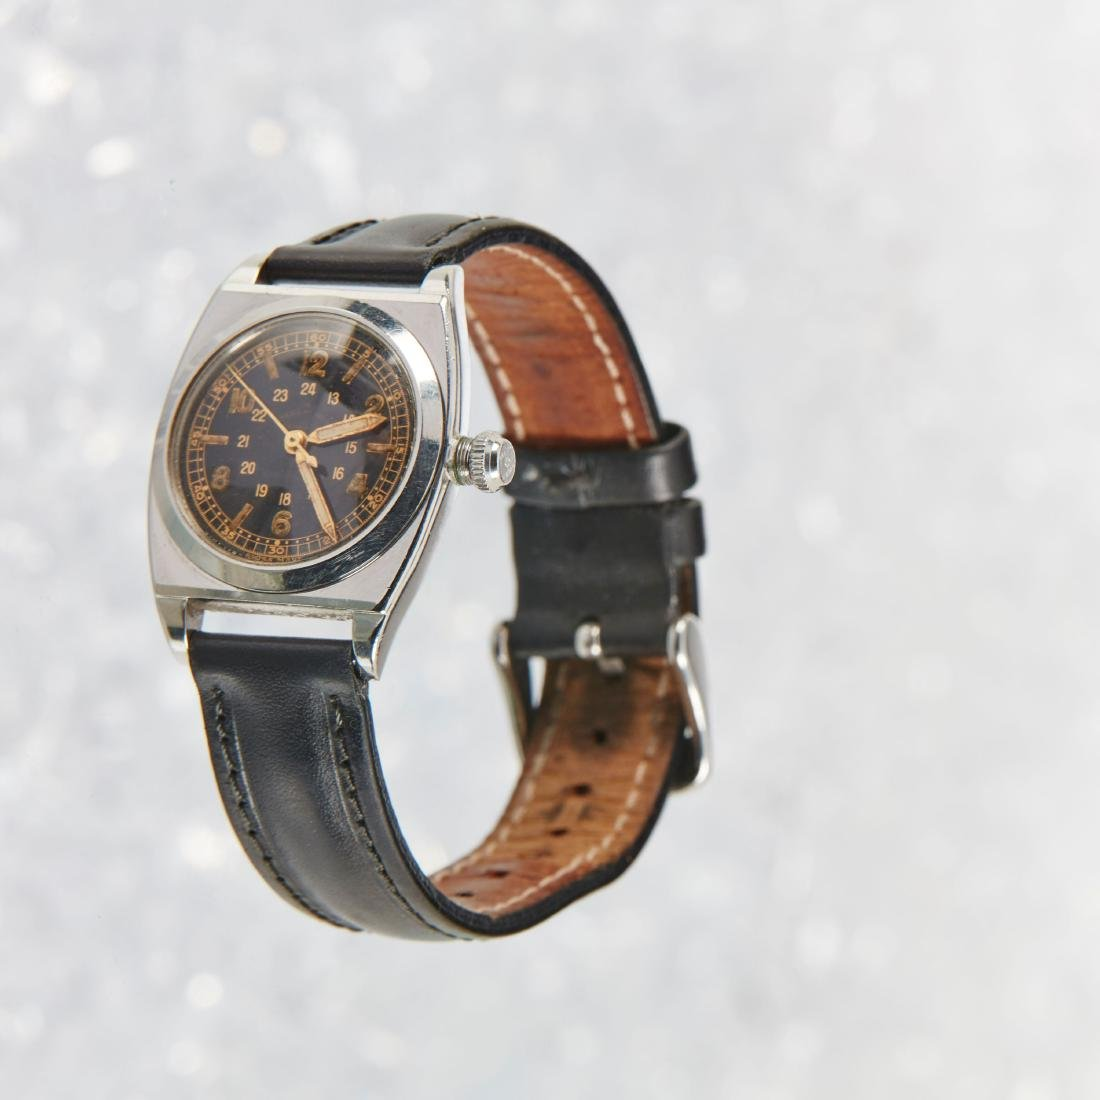 Rolex Oyster, Observatory, Ref. 3115 - 2